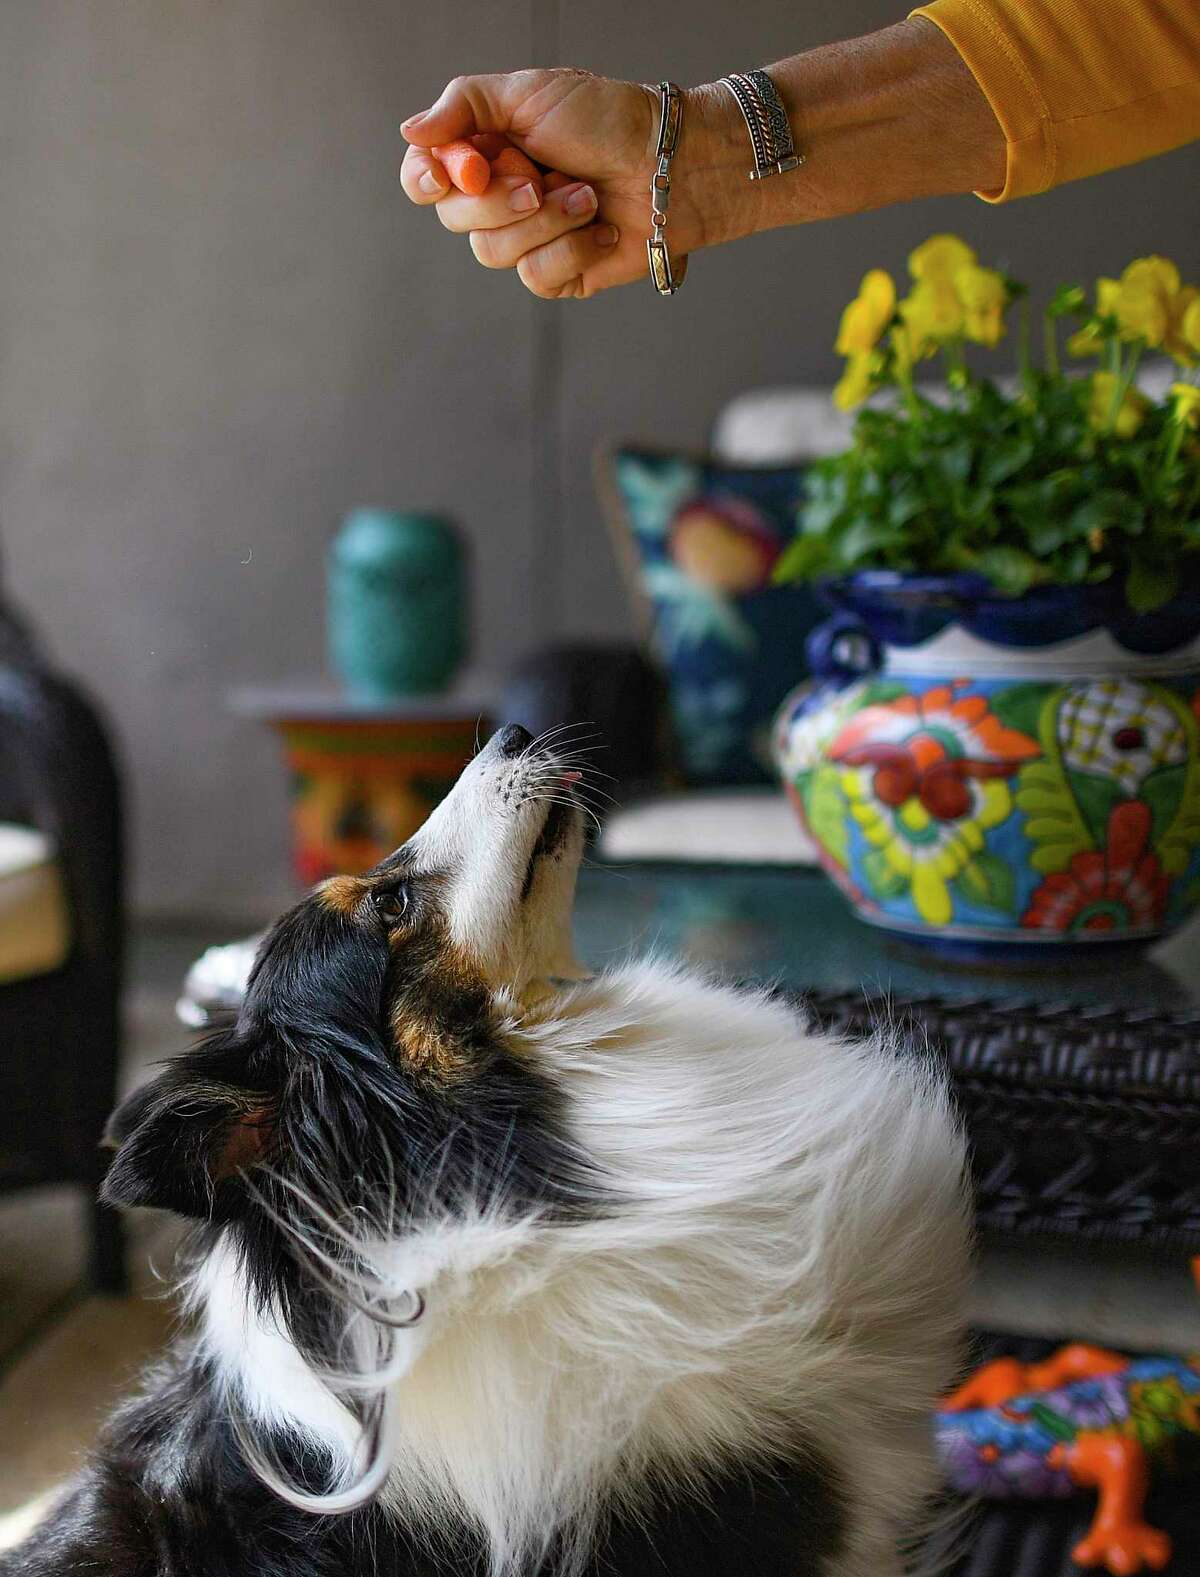 Lexi, a Sheltie belonging to Steve and Candi Robinson, looks for a treat. Like a lot of dogs during the pandemic, Lexi developed the bad habit of barking too much.